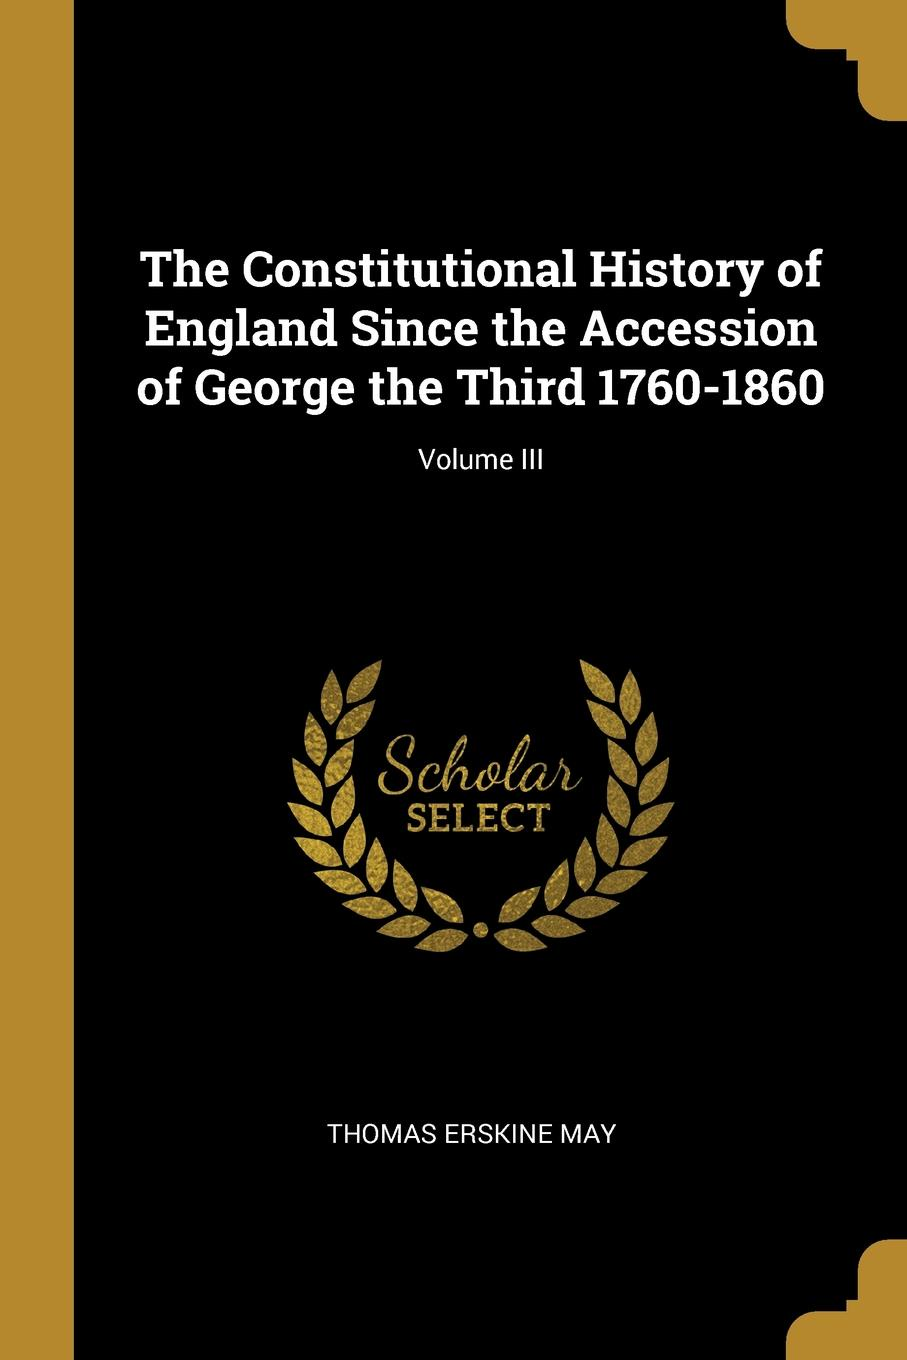 The Constitutional History of England Since the Accession of George the Third 1760-1860; Volume III